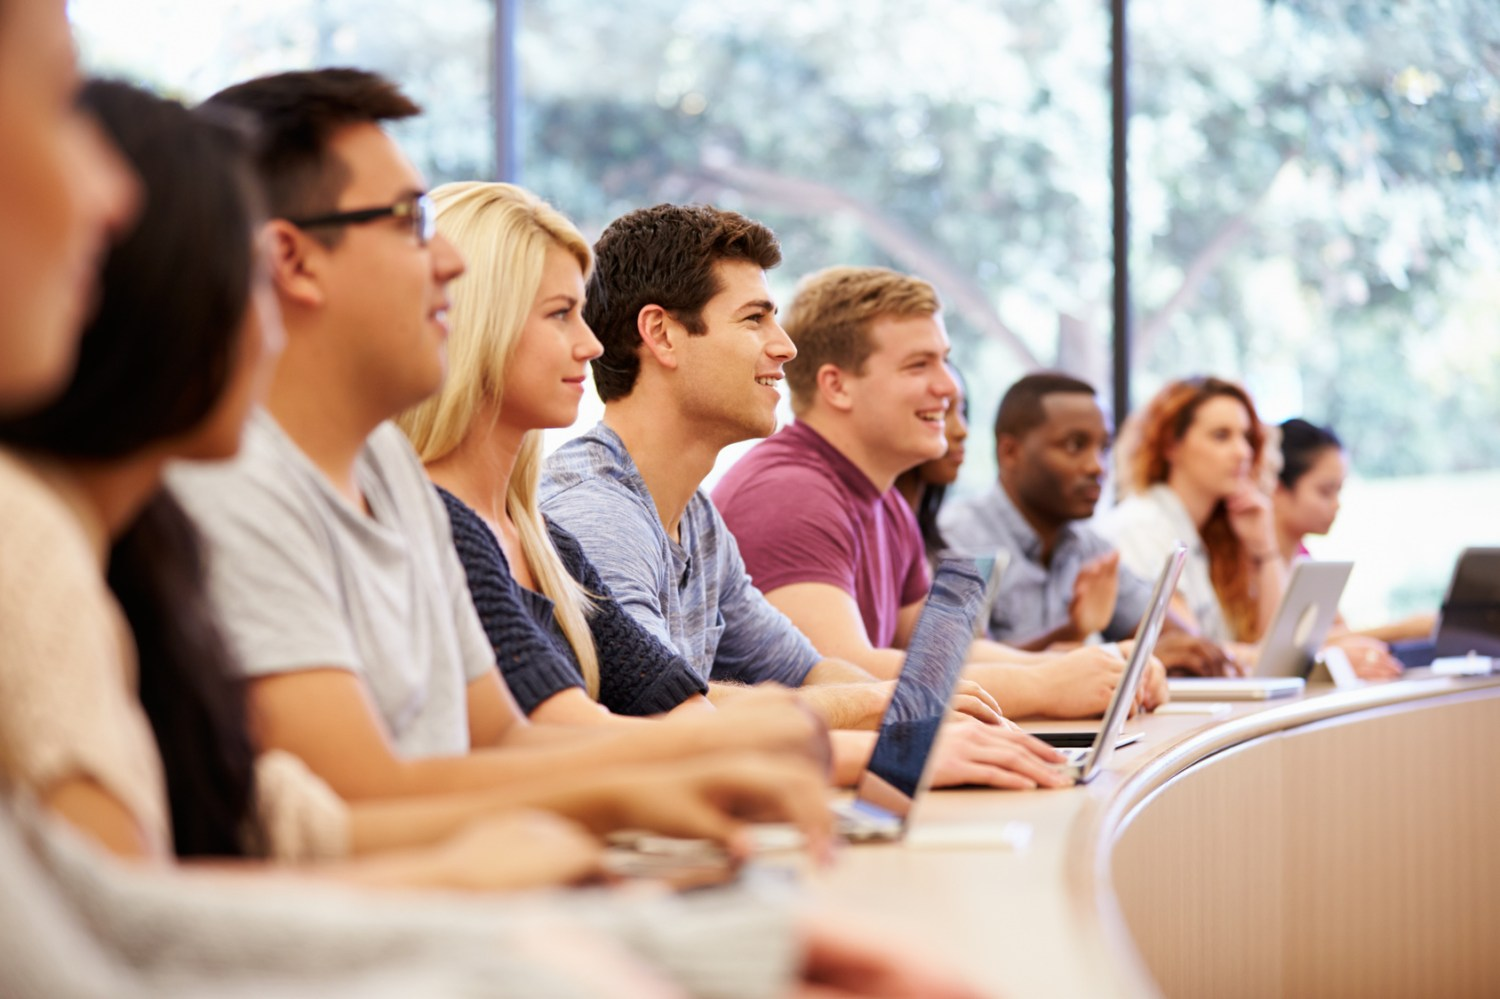 Health Insurance Options For College Students